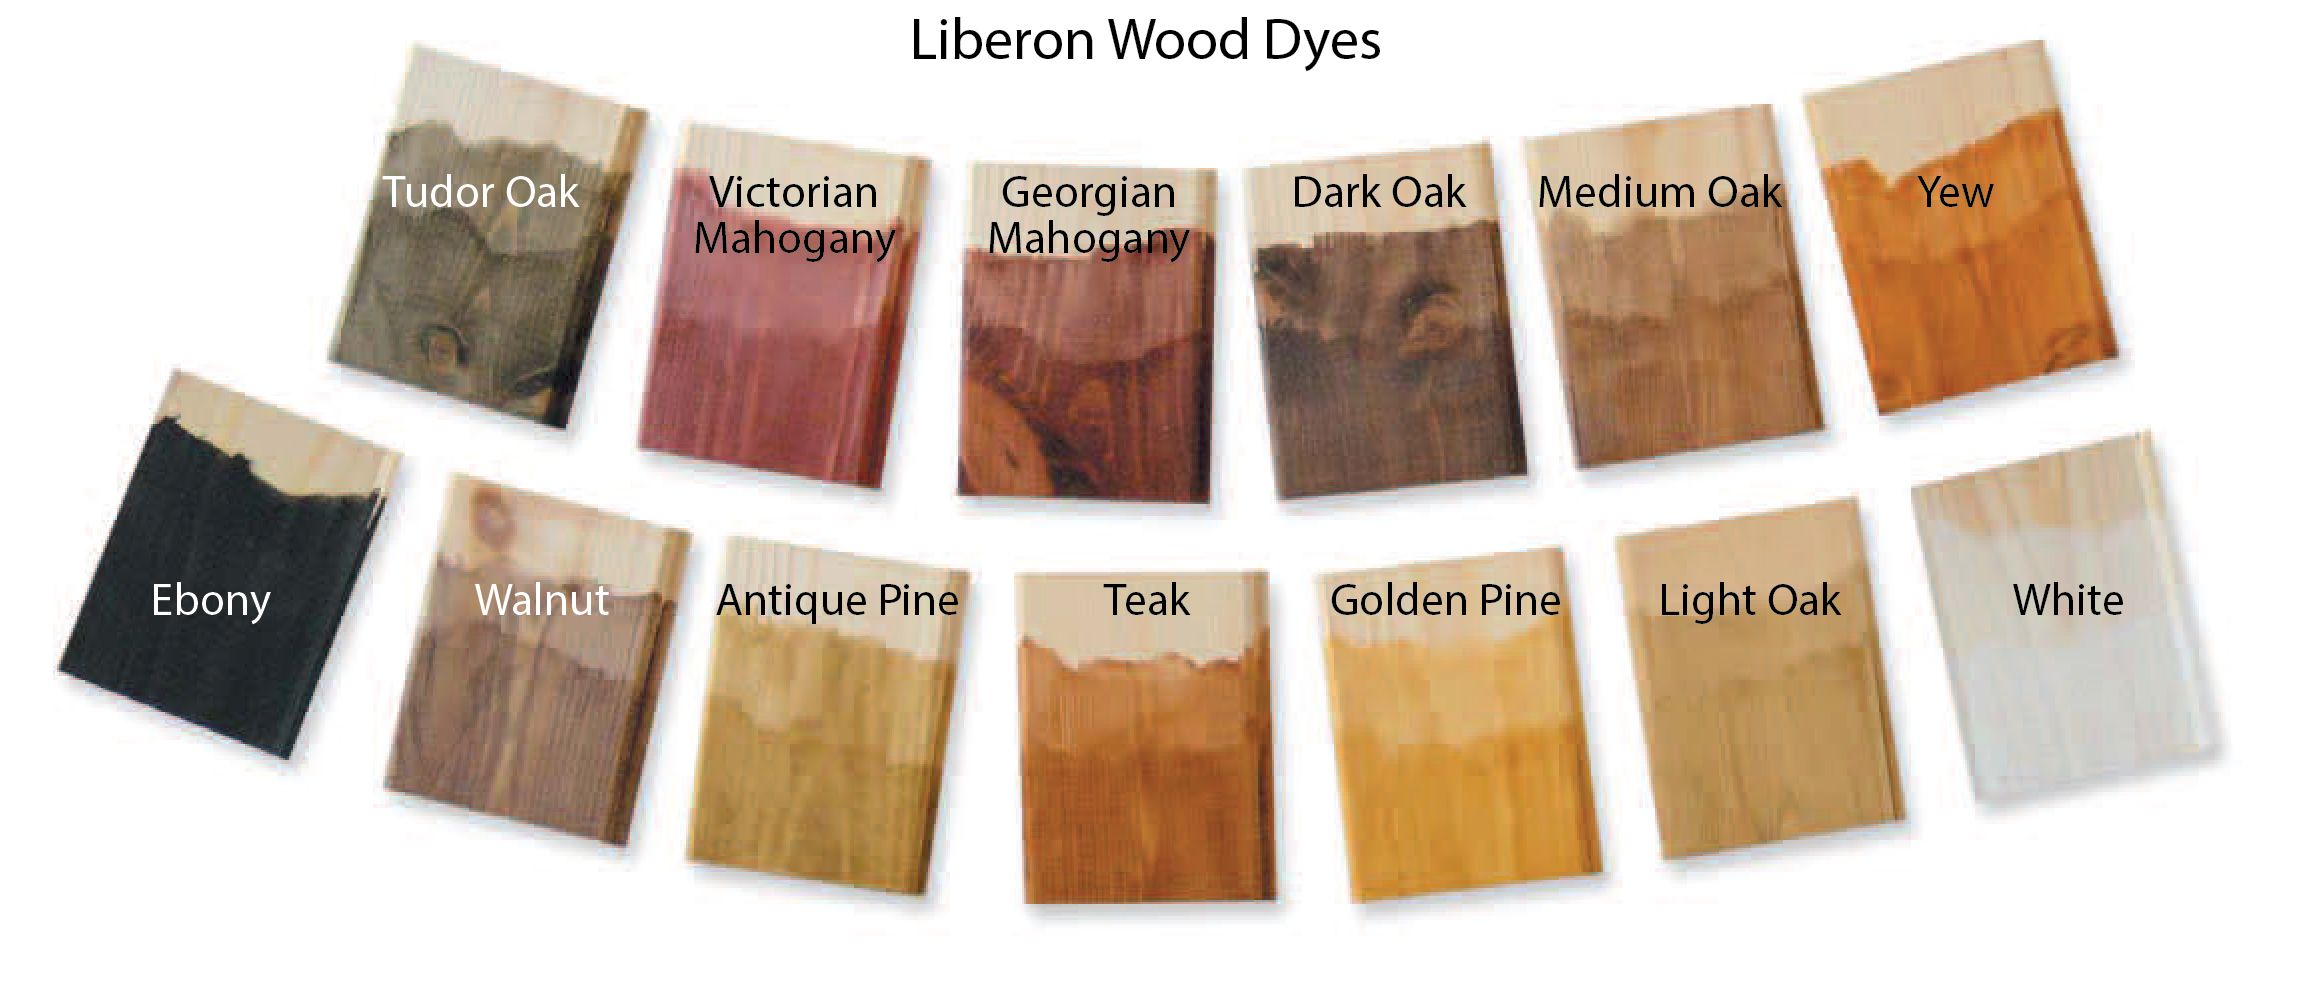 S g bailey paints ltd liberon wood dye colours Wood colour paint